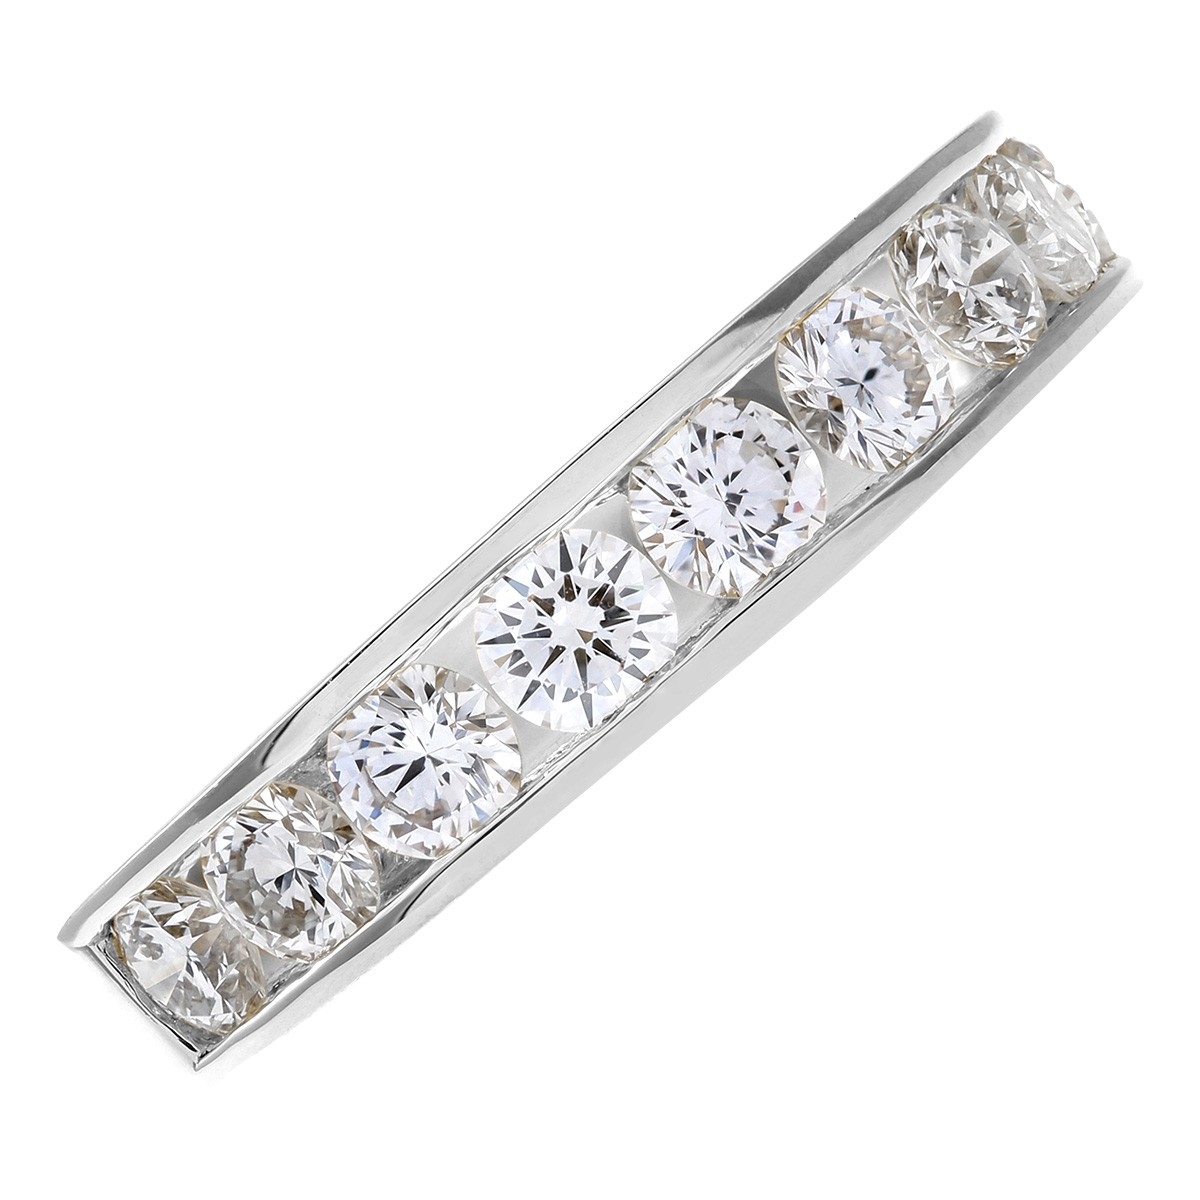 18CT WHITE GOLD 1.00CT DIAMOND 9 STONE CHANNEL SET 1/2 ETERNITY RING